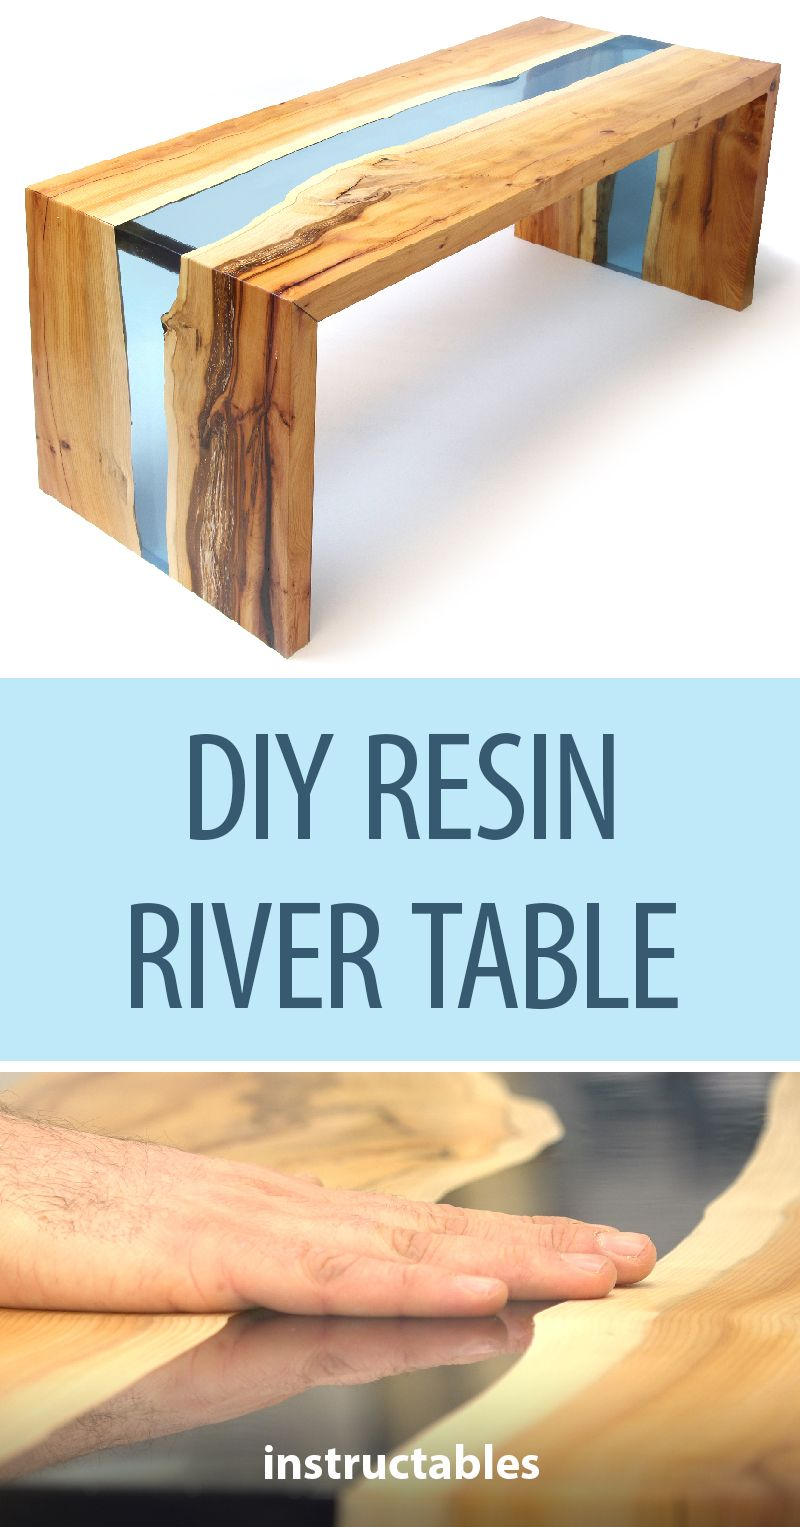 Pool Bauen Mit Epoxidharz Diy Resin River Table Using Clear Epoxy Casting Resin And Wood